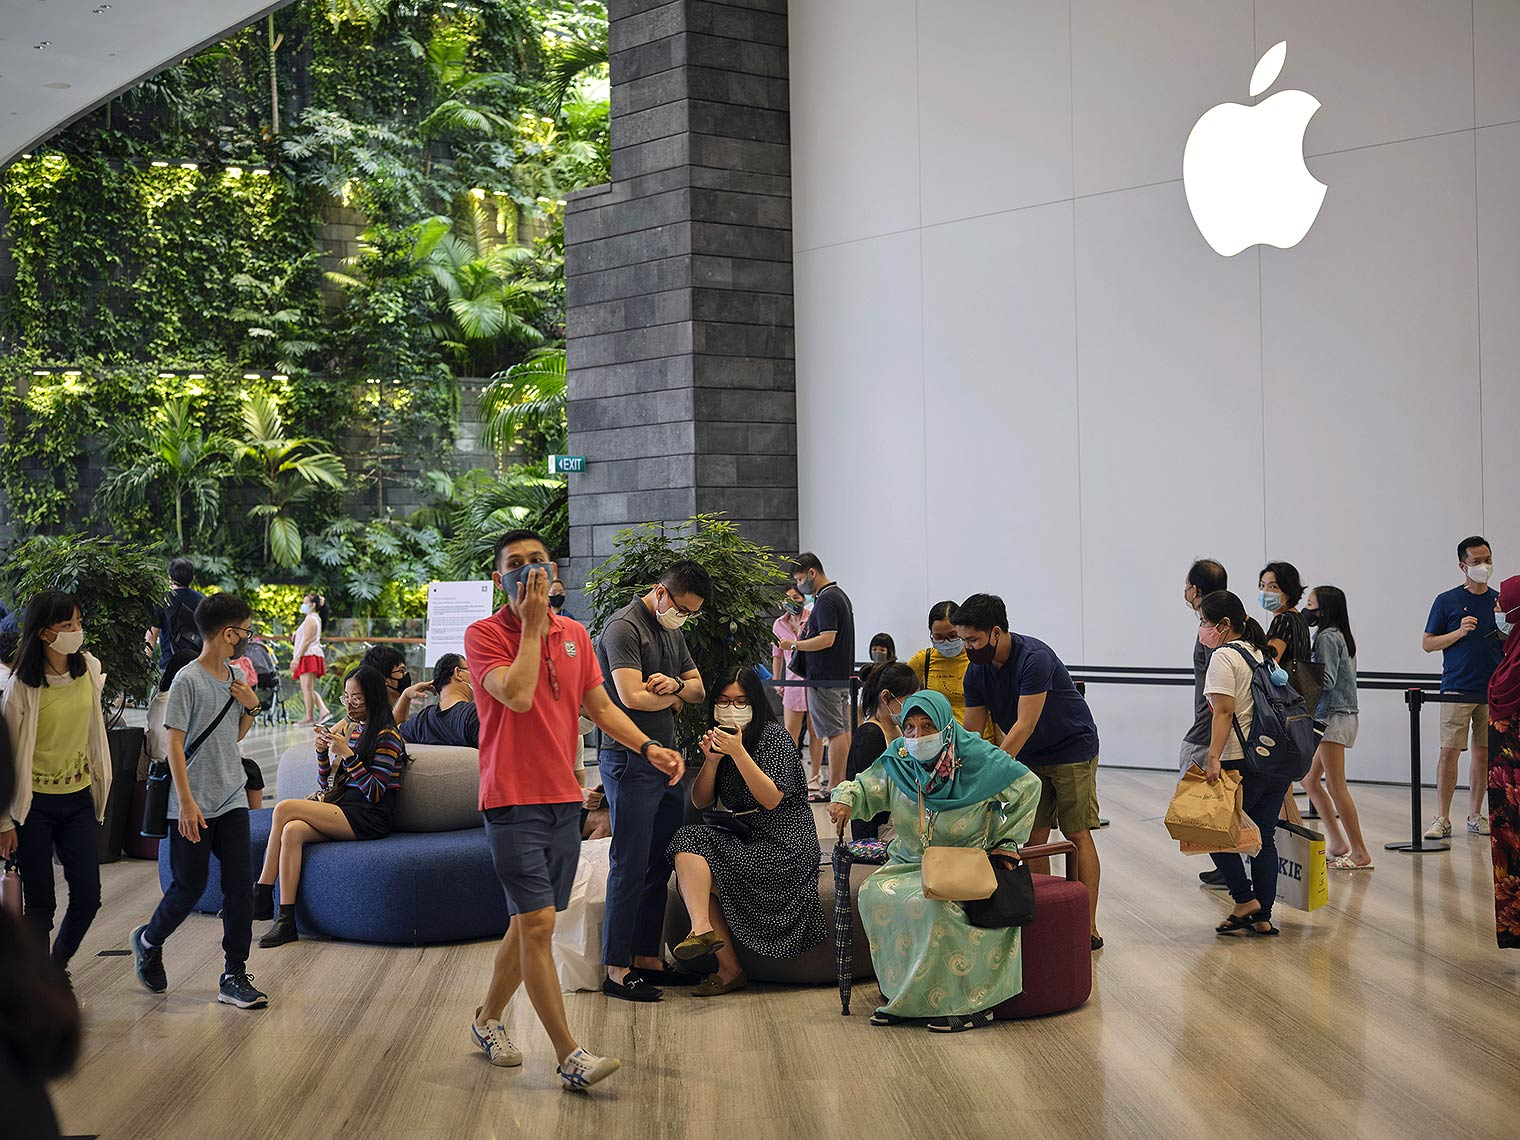 Masked shoppers sitting and standing in a mall, with a greenery-covered wall to the left and a large glowing Apple-brand logo on the wall to the right